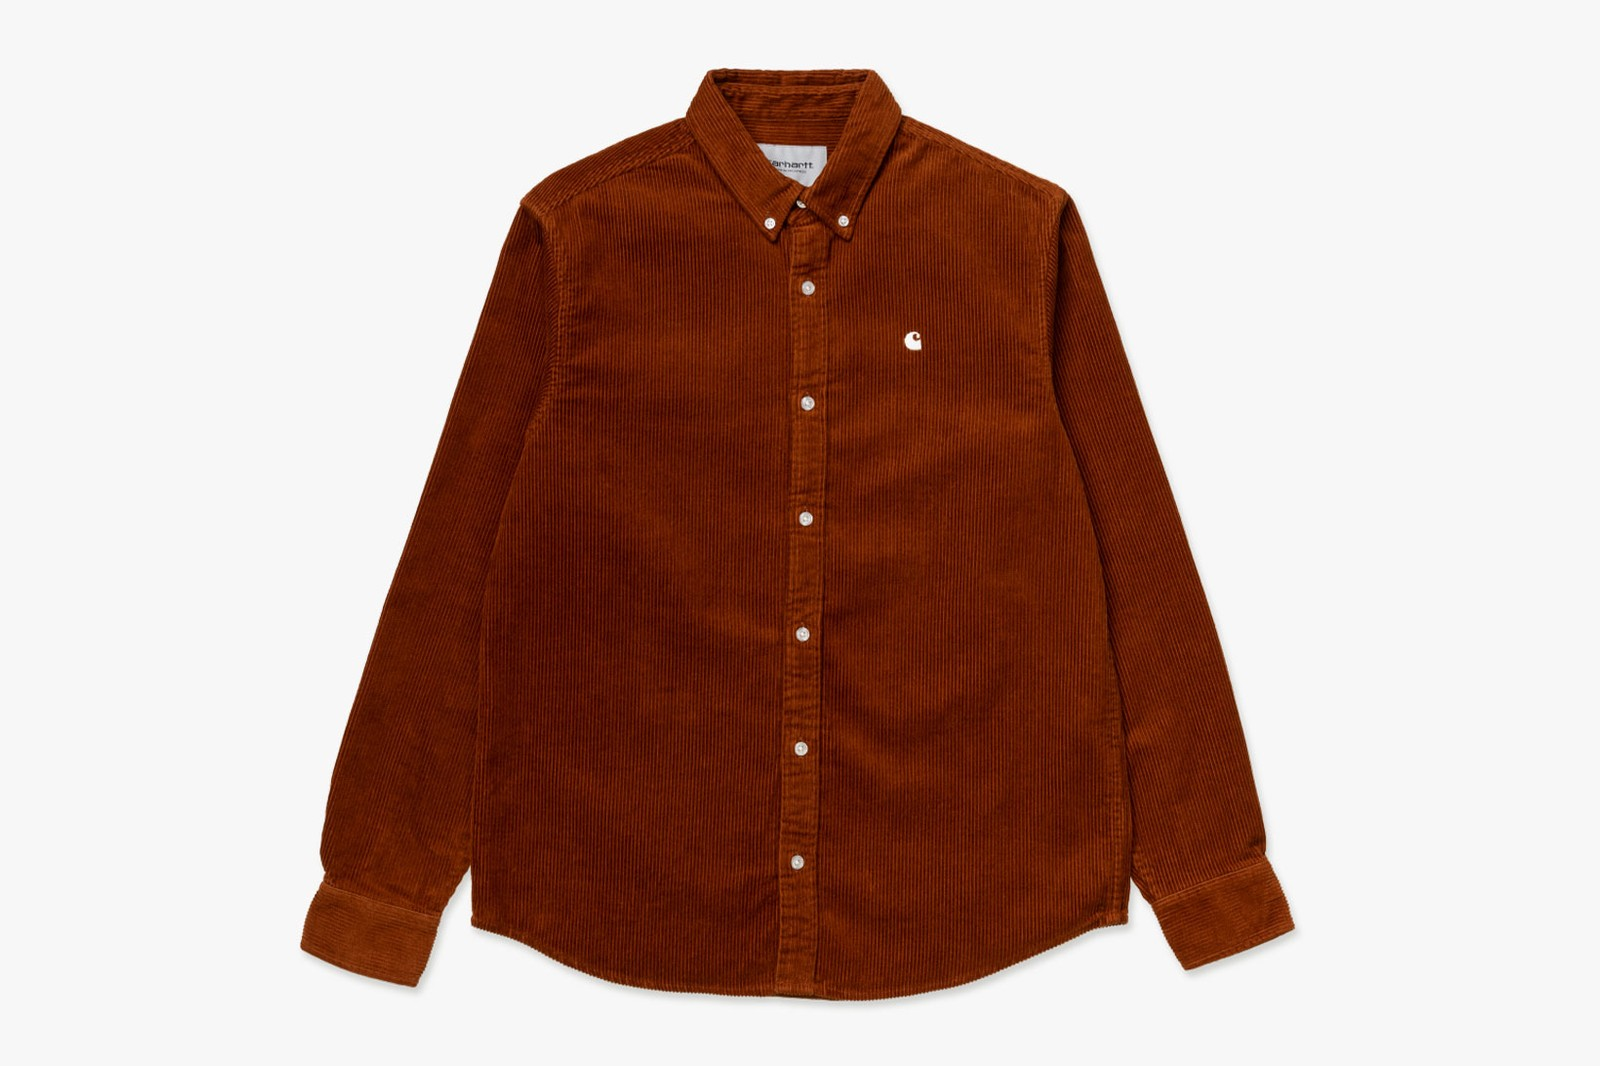 carhartt wip tactile classics corduroy collection fall winter jackets shirts overalls